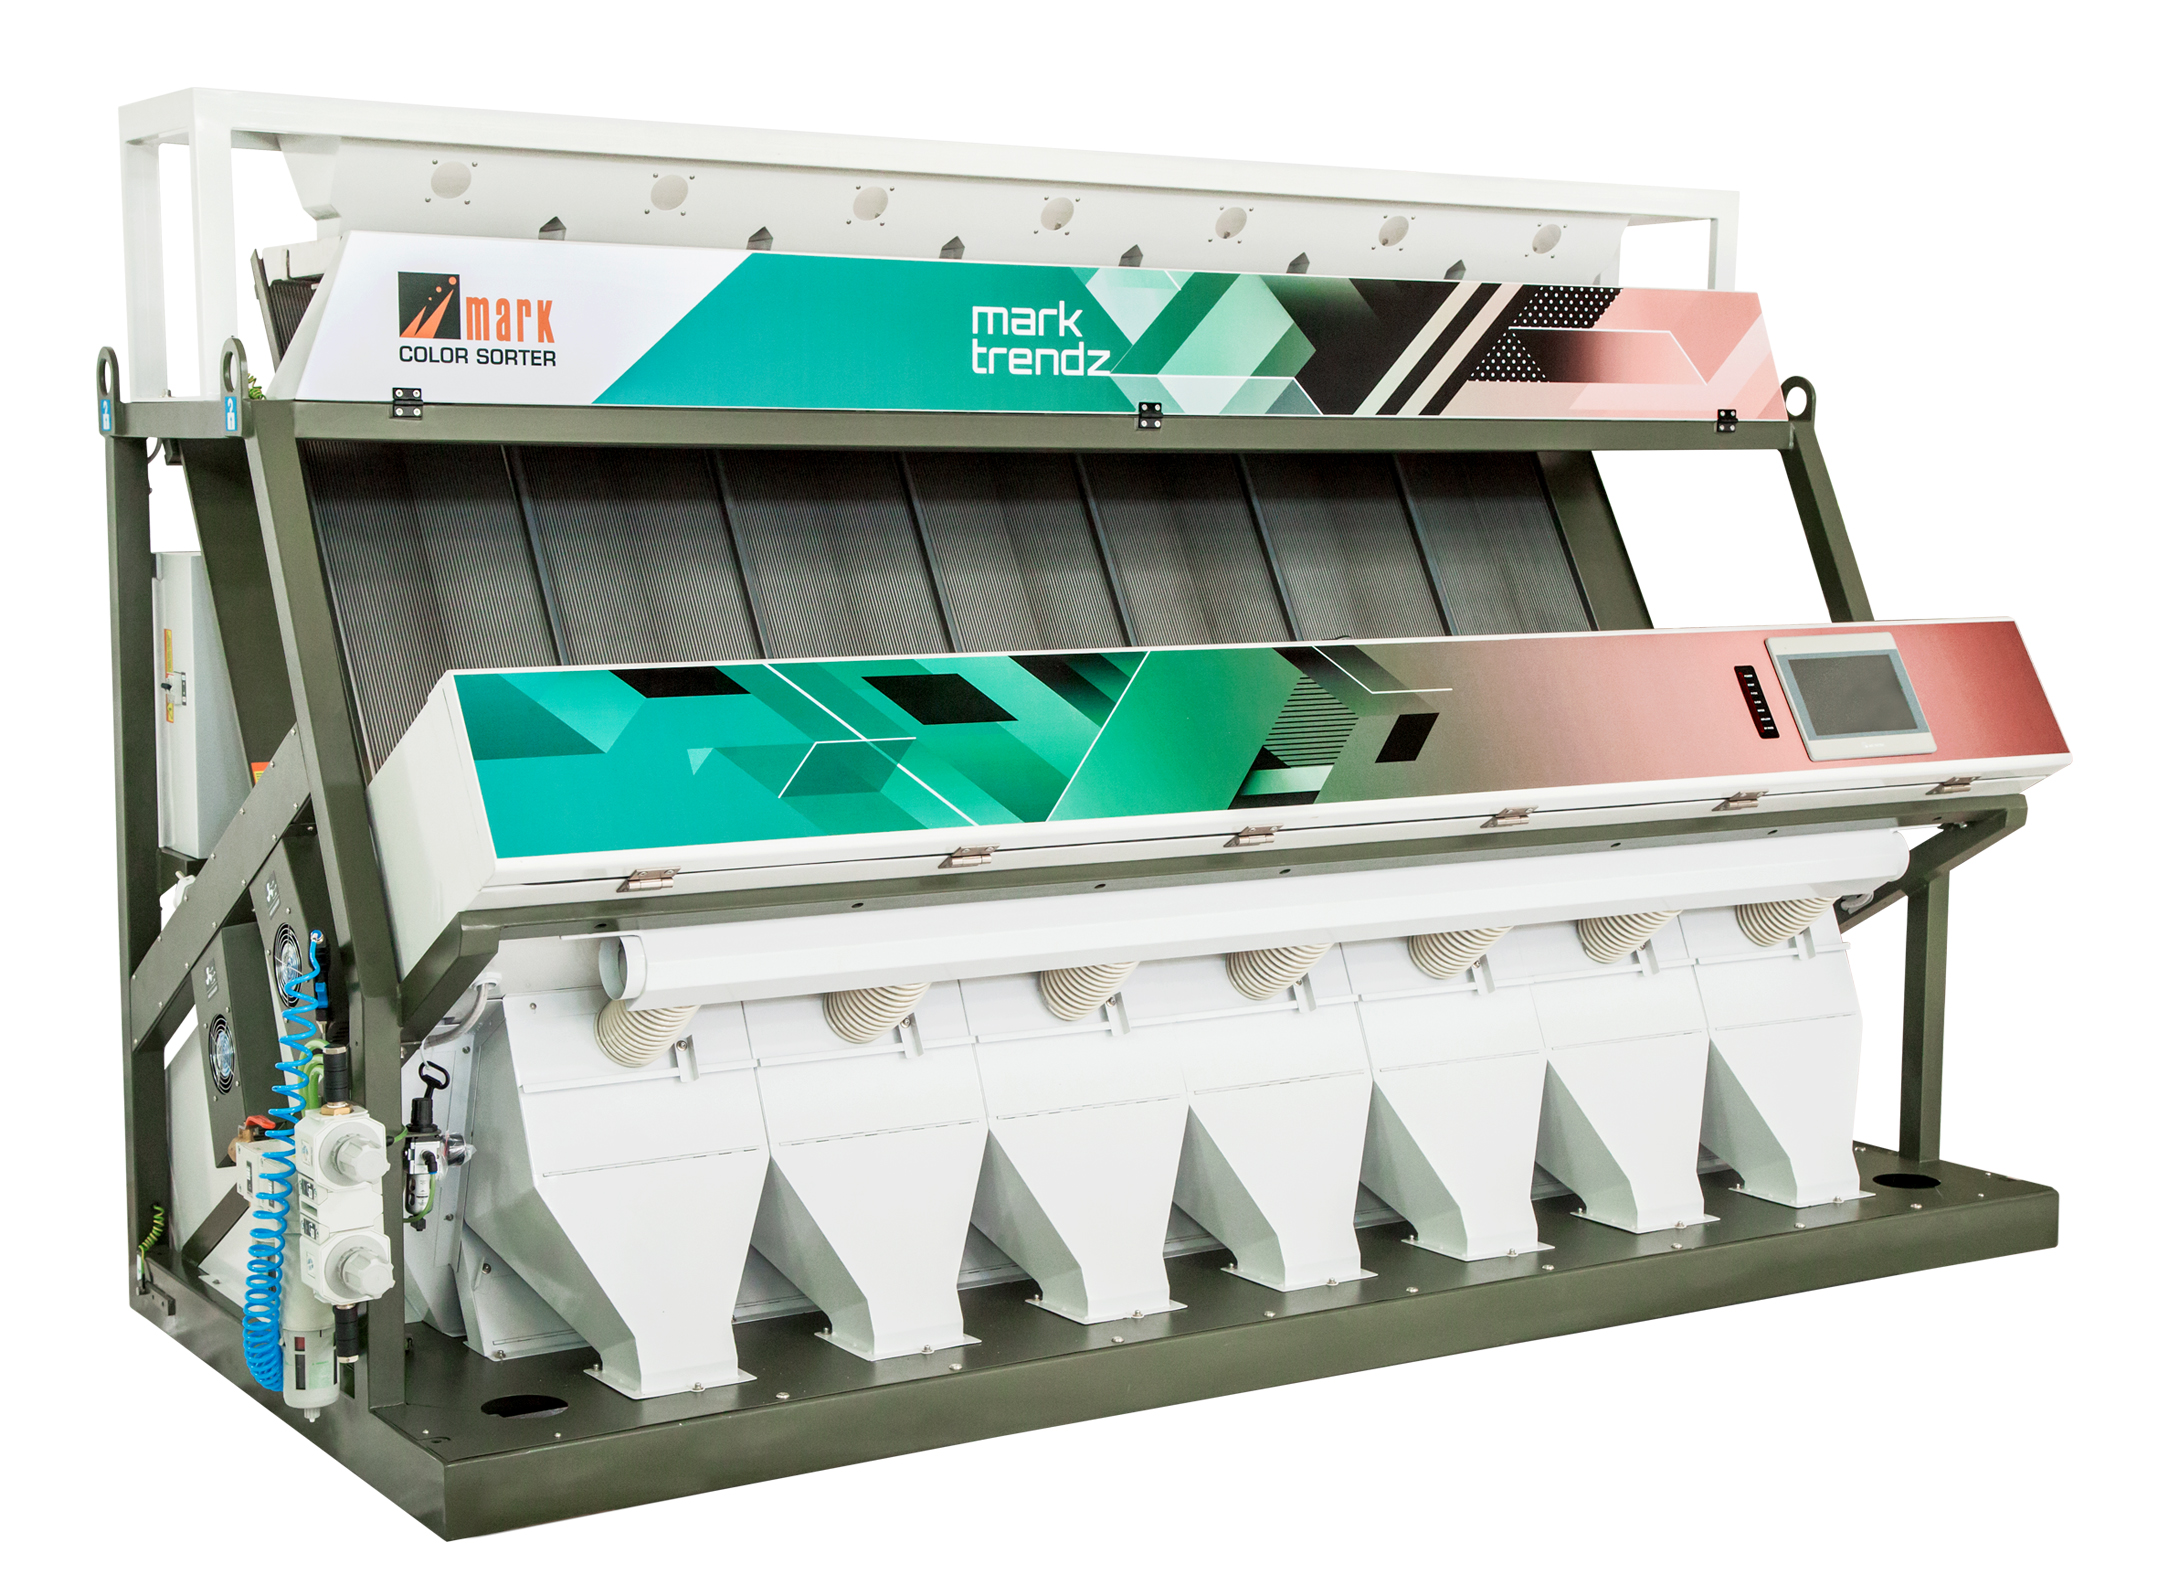 Tri Choromatic Camera Sorter Machine Manufacturer Mark Sorter Only Available For Trichromatic Camera Using In Indian Made .With Processor FPGA In Image Sensor RIce Colour Sorter Machine , Dhall Colour Sorter Machine ,  Plastic Sorter Machine, Grain Sorter Machine , Sorter Machine Manufacturer In India, Color Sorter Machine Manufacturer In Coimbatore ,  Udath Dall Sorter Machine ,  Bichromatic Camera Sorter Machine  www.marksorter.com